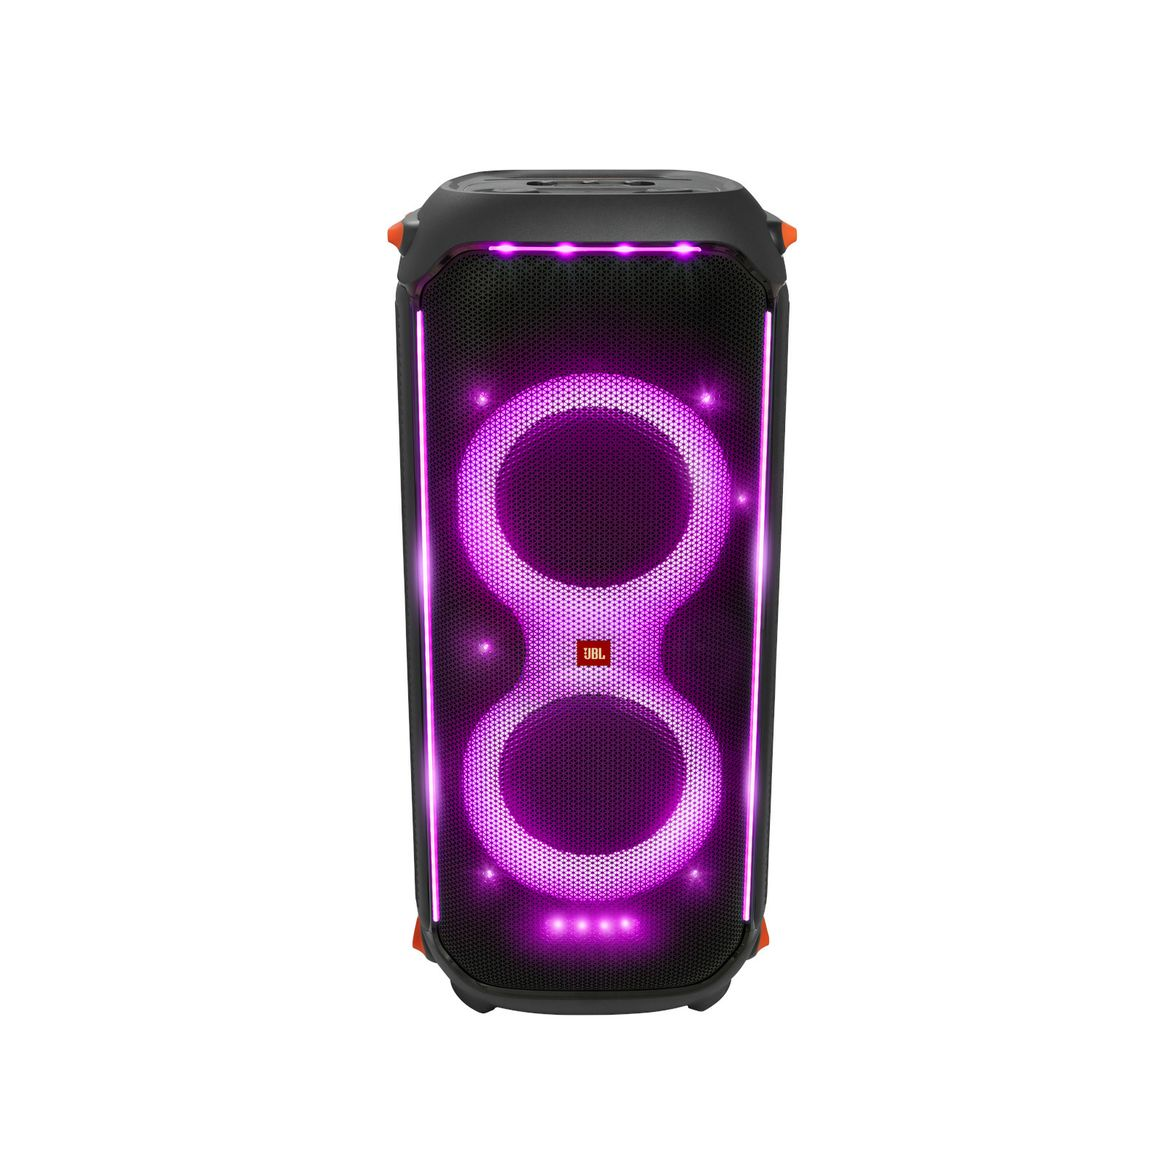 6. JBL_PARTYBOX_710_FRONT